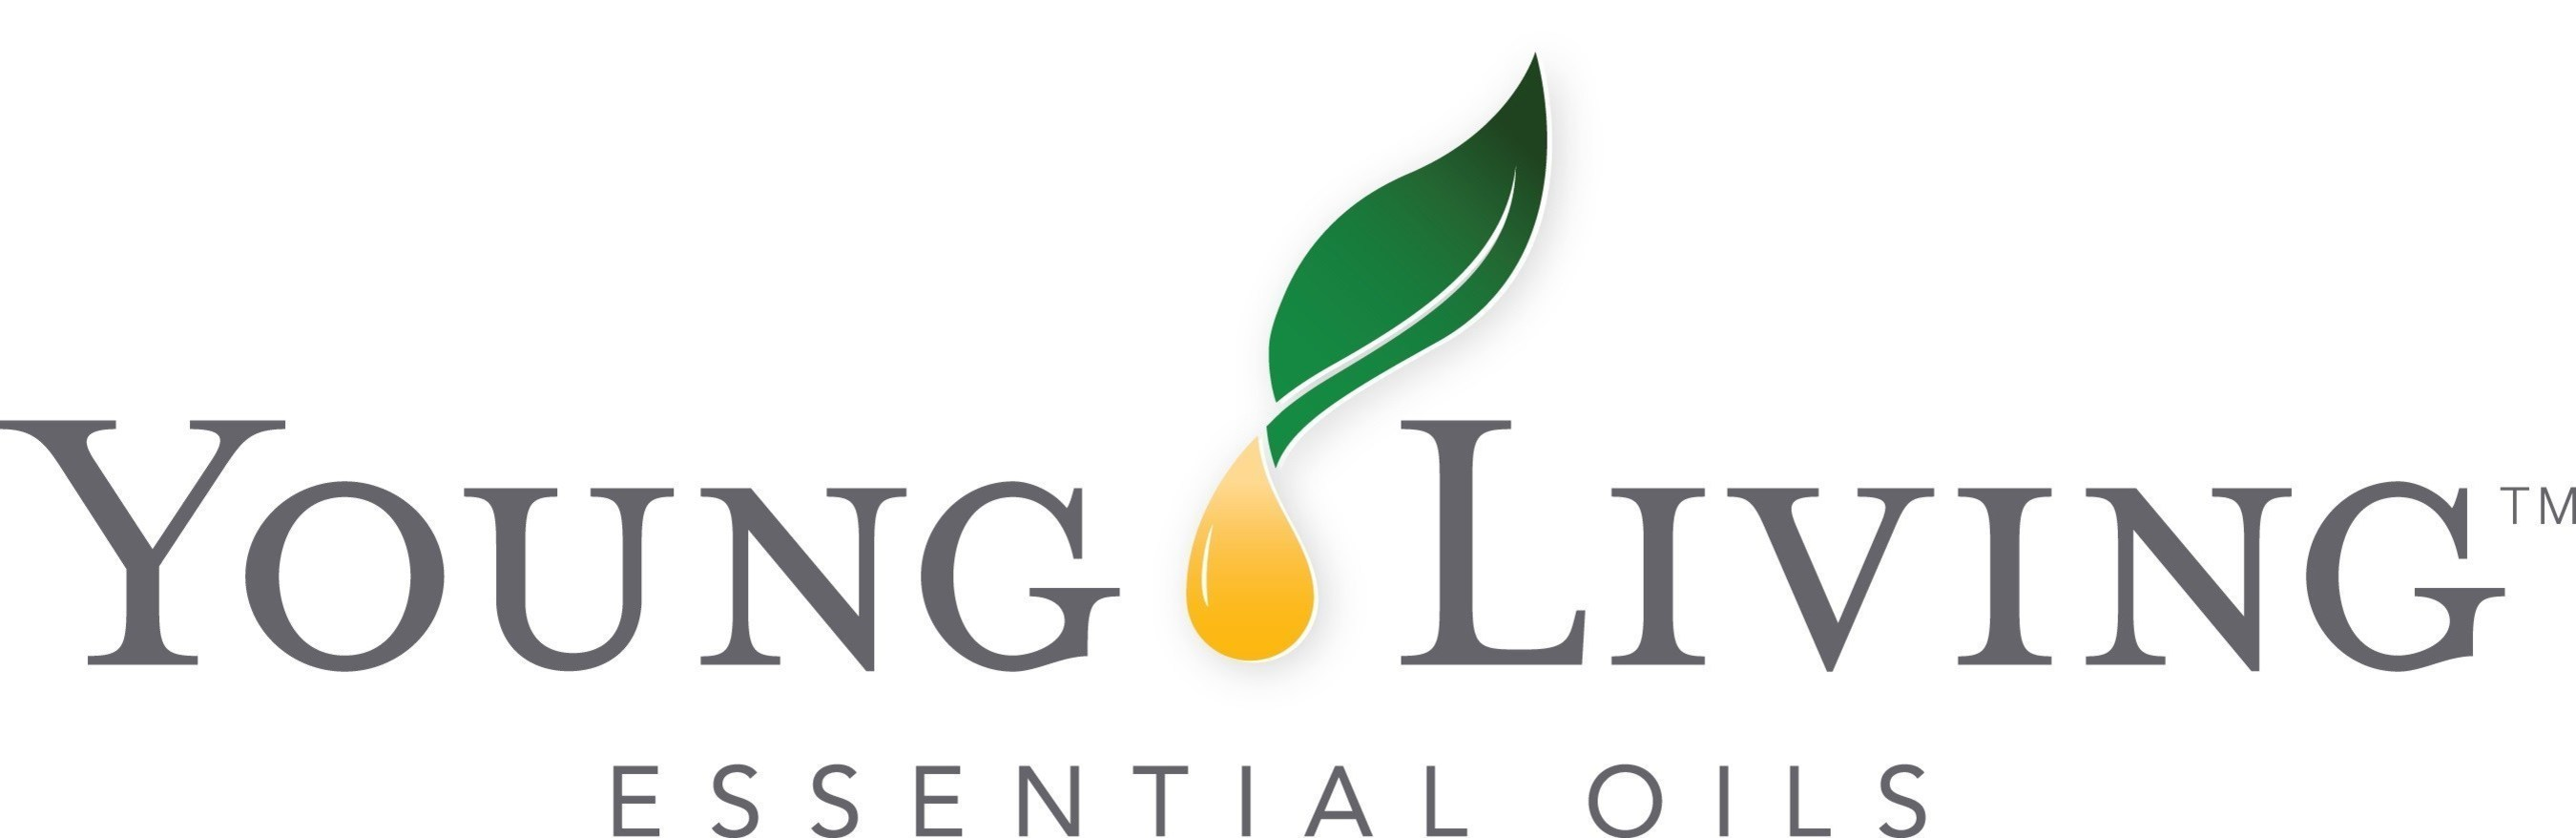 Young Living Essential Oils, LC is the world leader in essential oils and has been providing the highest quality plant based products to customers for over twenty years. Its proprietary Seed to Seal(R) process ensures exacting standards are met every step of the way, from seed to seal. This commitment stems from the company's stewardship towards the earth and its people all over the world. For more information, visit: www.youngliving.com.